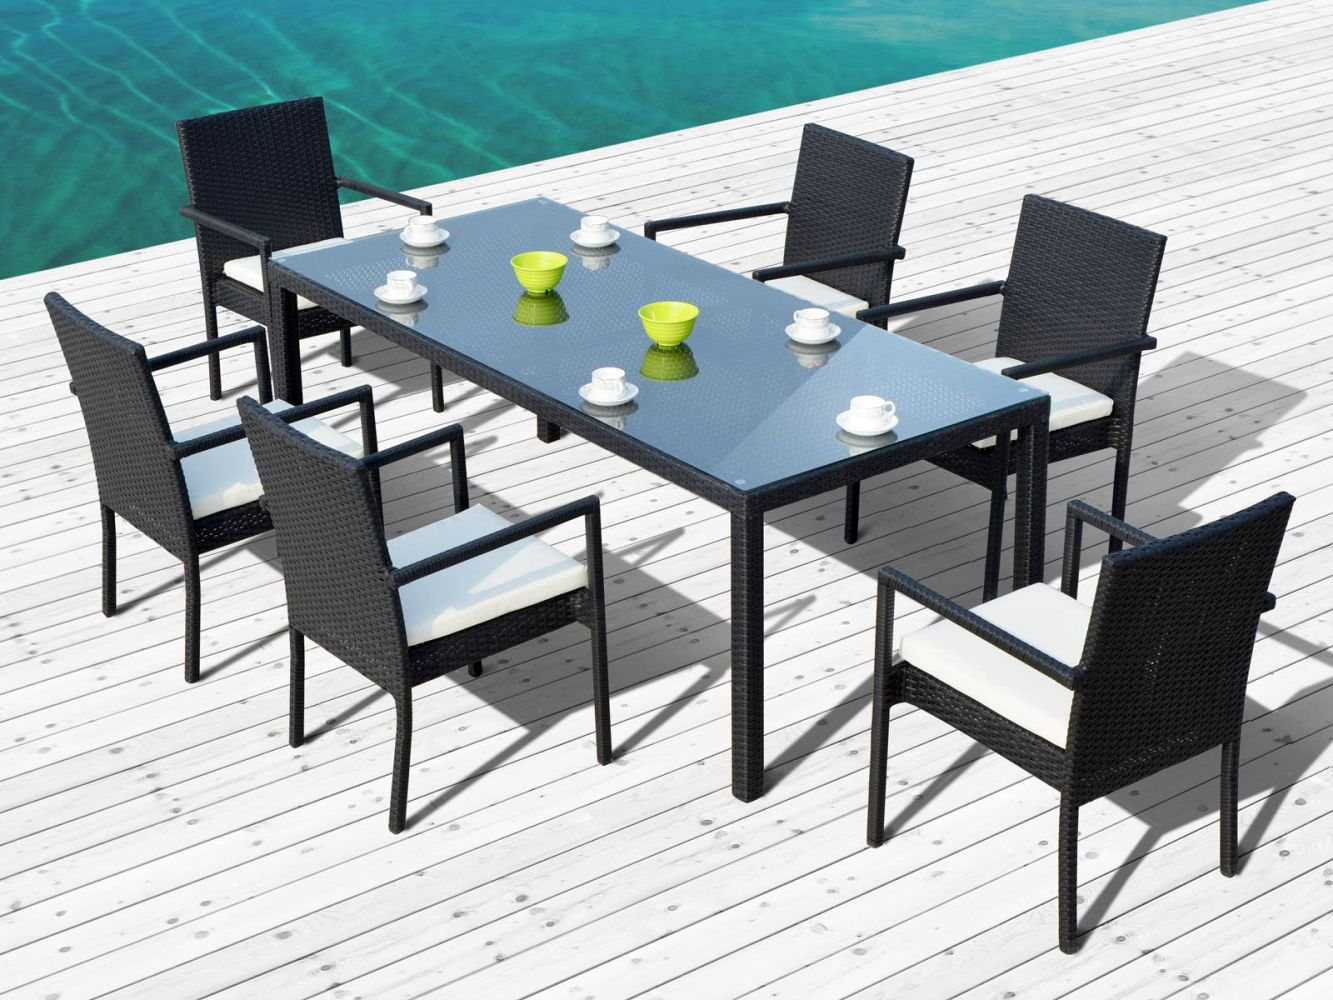 table table de jardin contemporain meilleures id es pour la conception et l 39 ameublement du. Black Bedroom Furniture Sets. Home Design Ideas